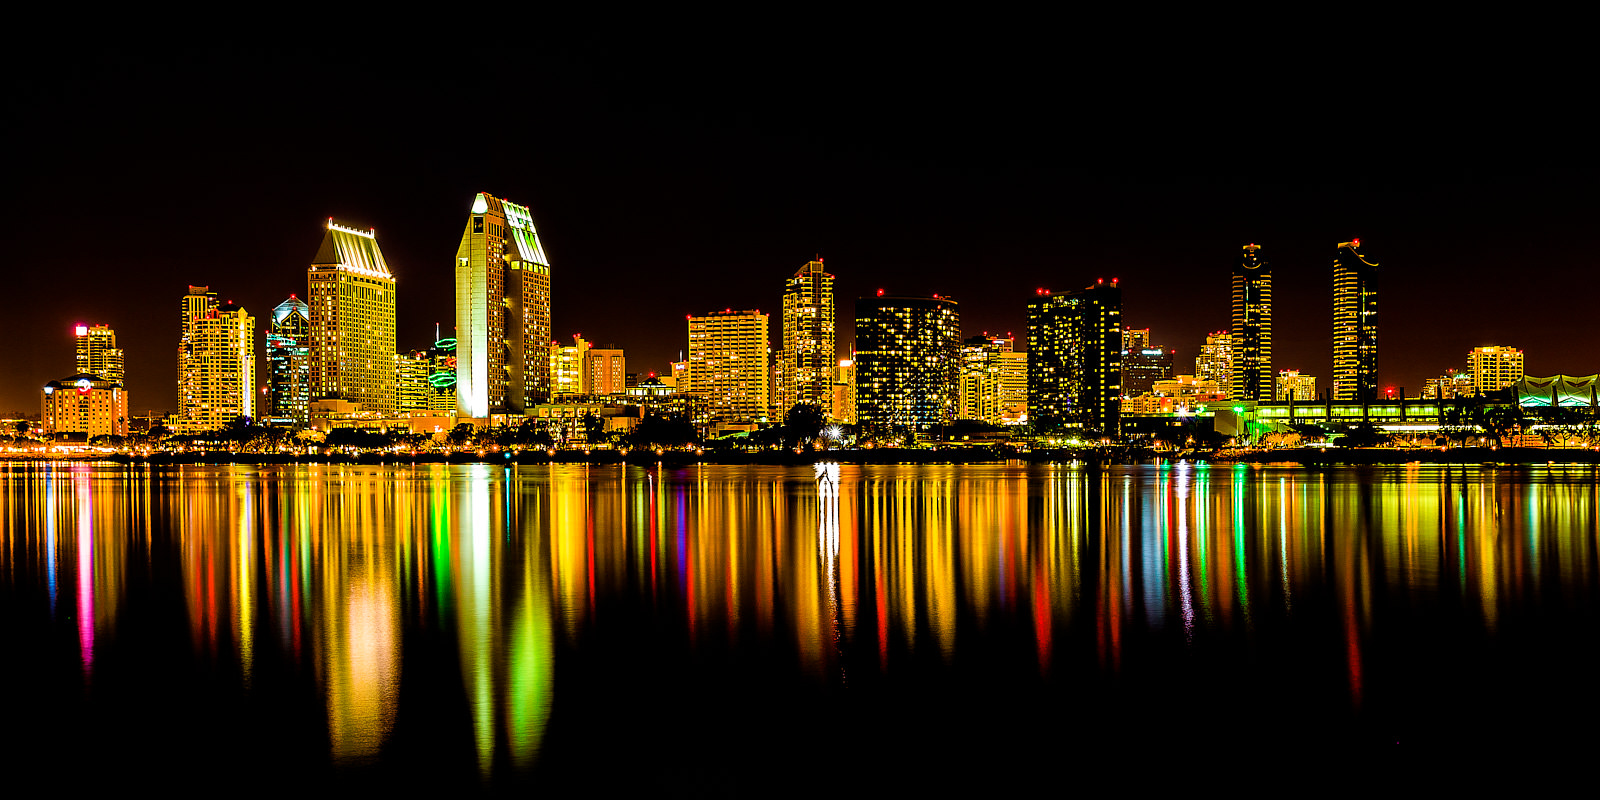 America, USA, United States, andrew shoemaker, california, city, cityscape, coast, downtown, harbor, lights, night, ocean, pacific, reflection, san diego, skyline, southern california, water, watersca, photo